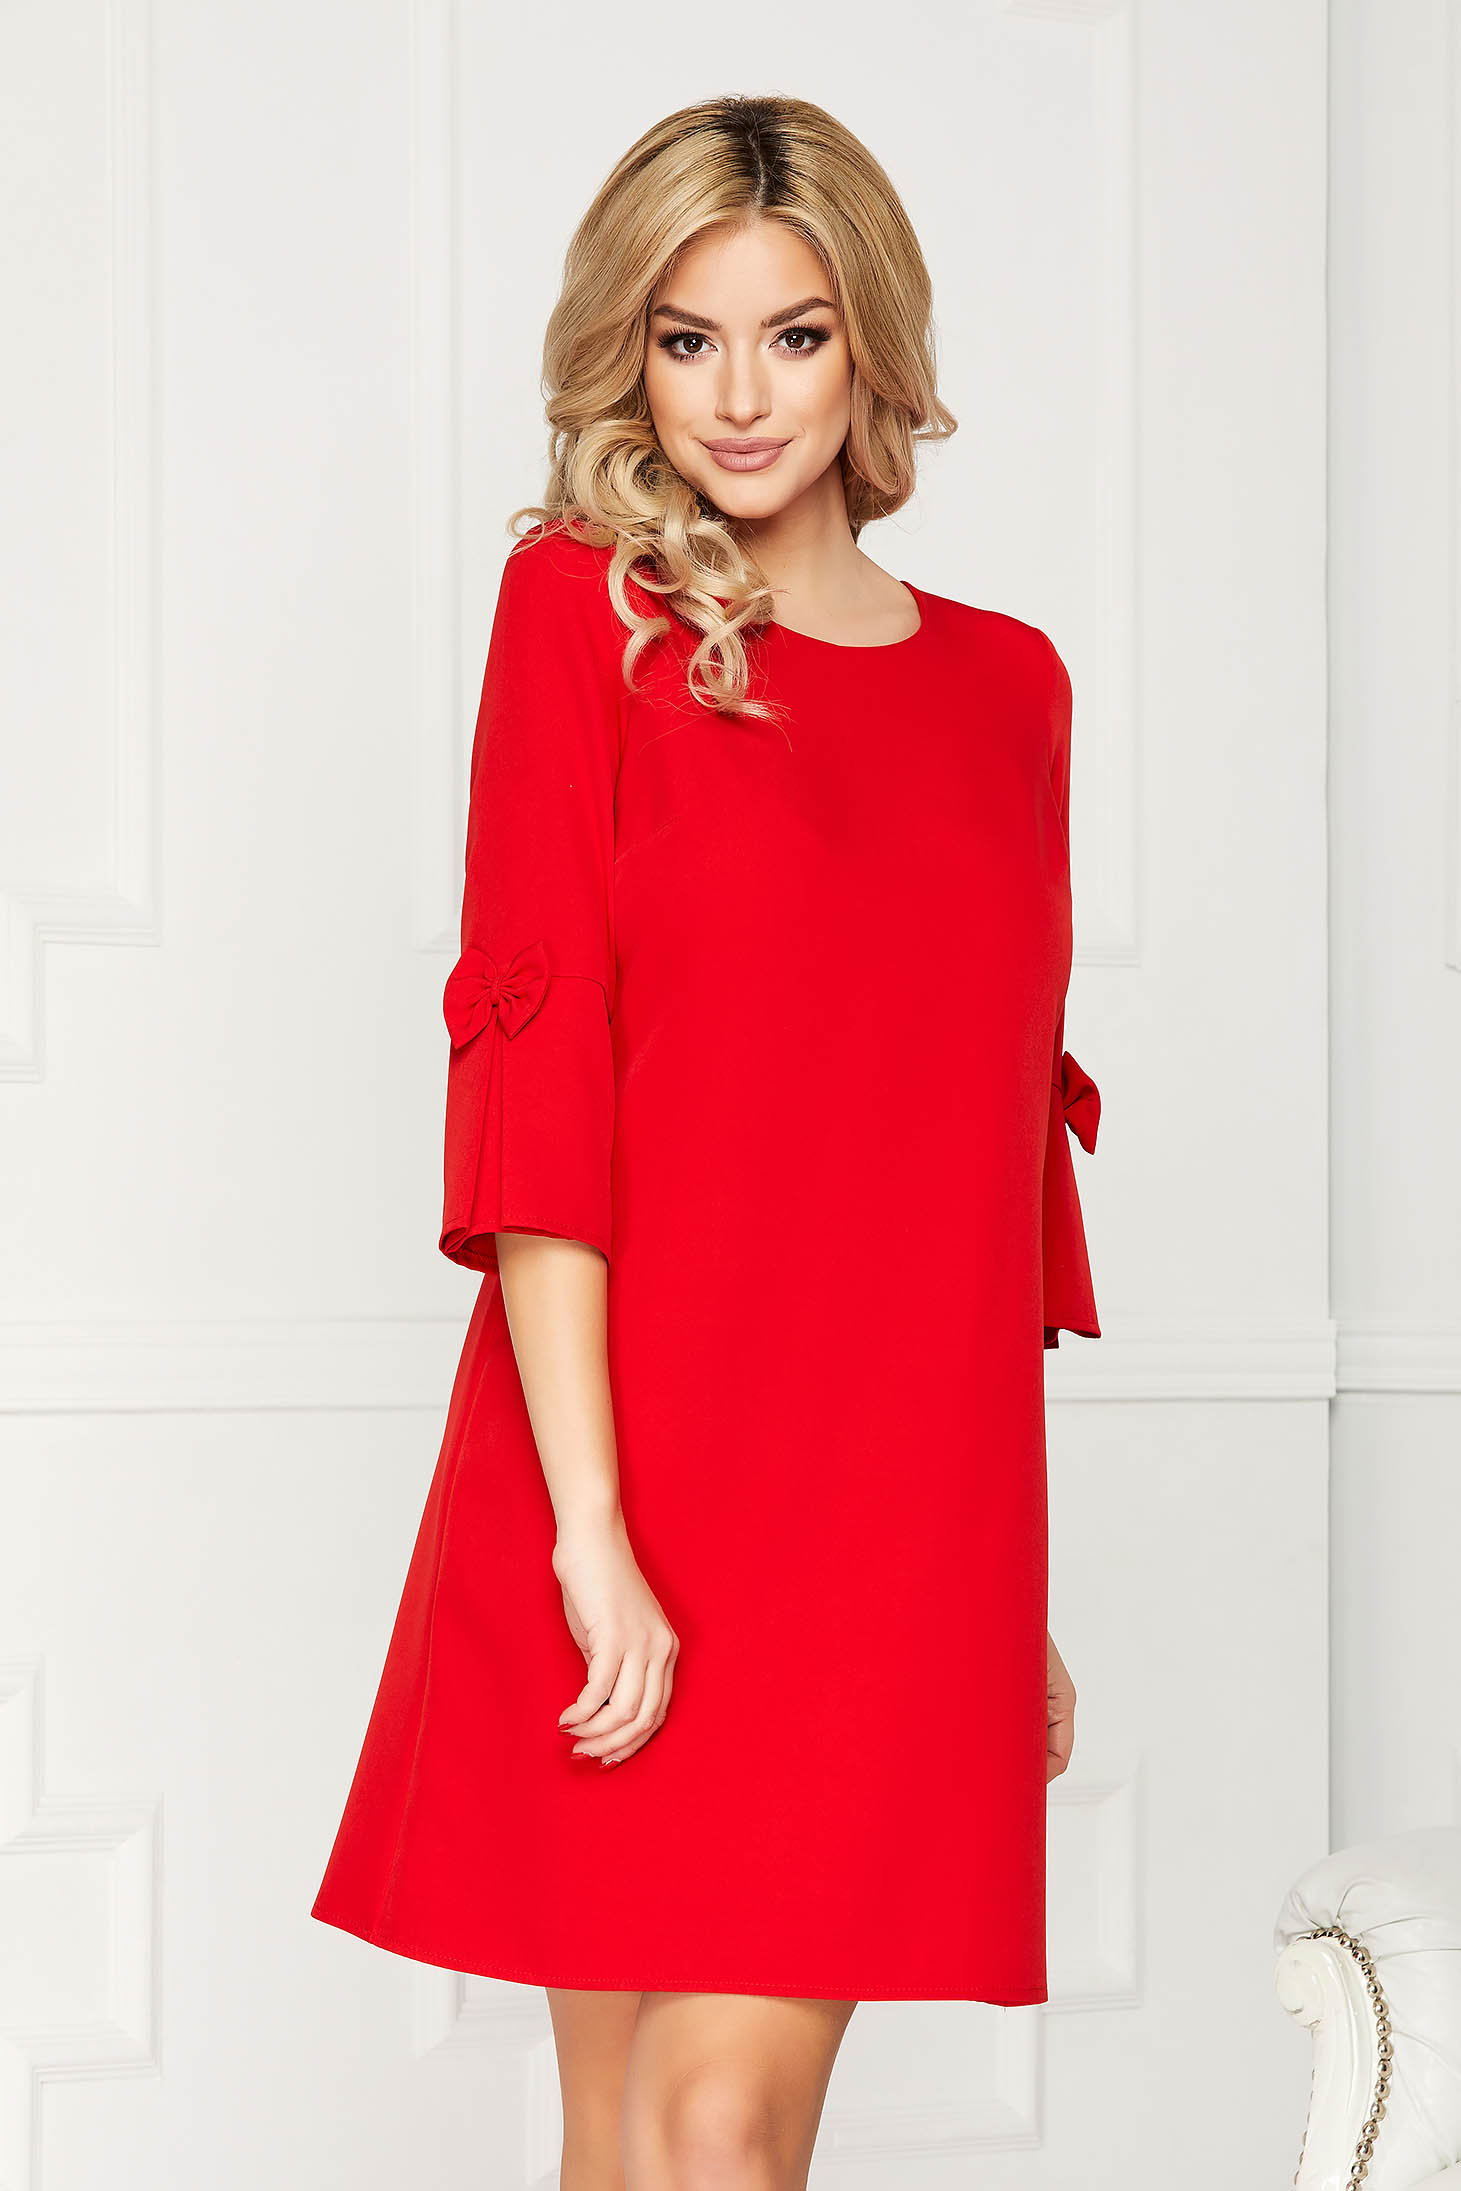 Red elegant dress straight short cut cloth with 3/4 sleeves